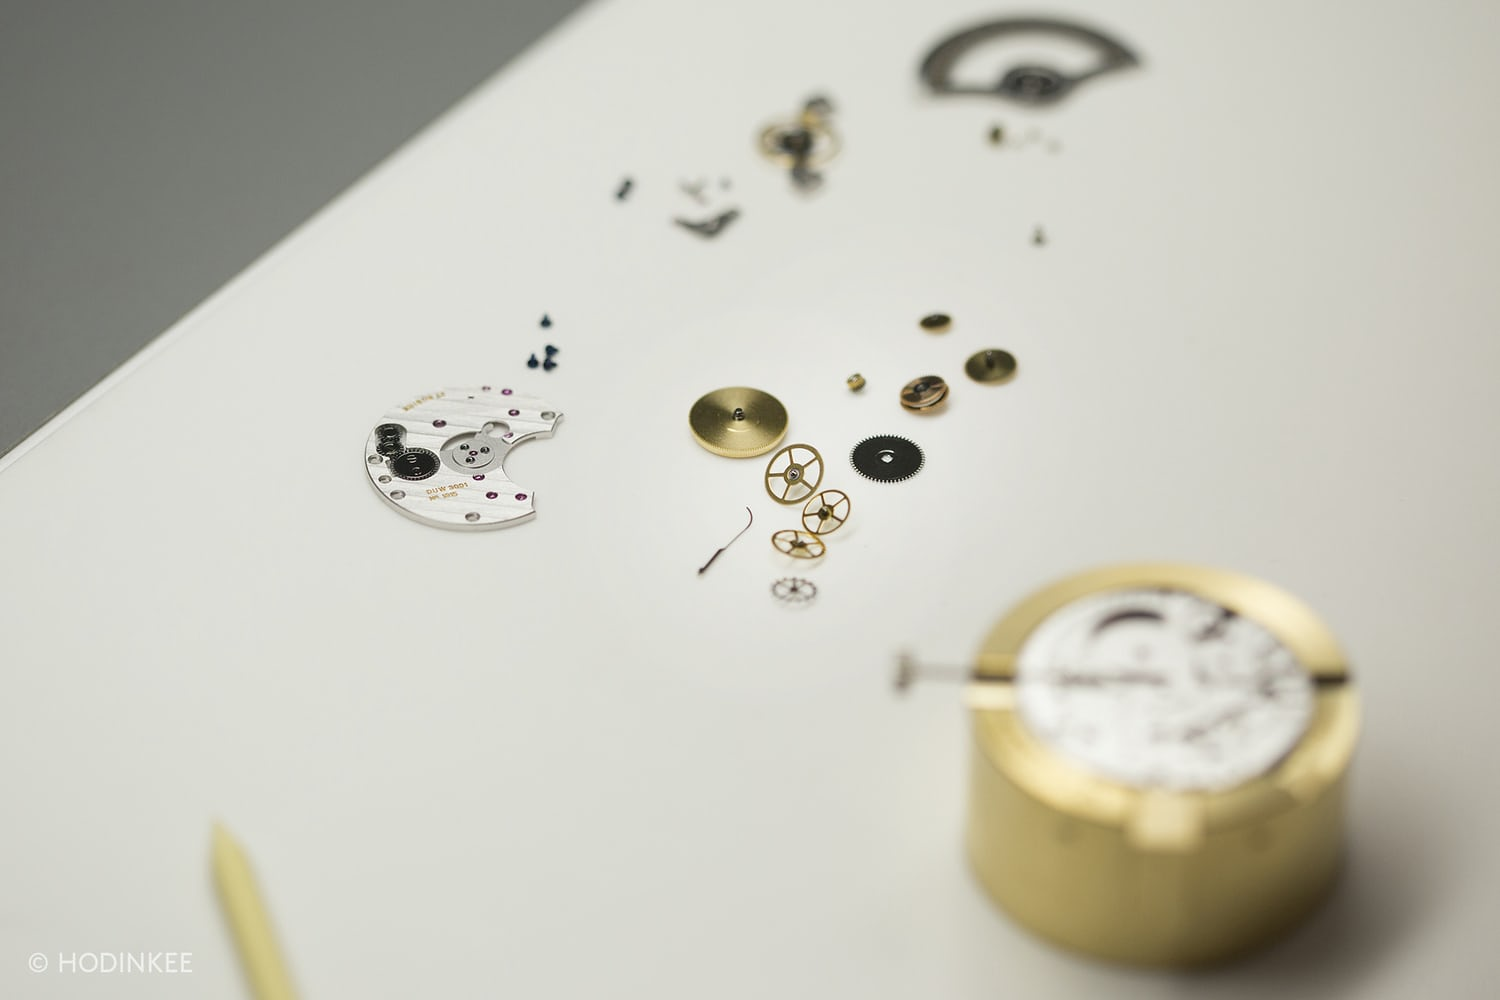 Inside The Manufacture: A Visit To NOMOS Glashütte, From Design To Production (VIDEO) Inside The Manufacture: A Visit To NOMOS Glashütte, From Design To Production (VIDEO) 588A8941 copy